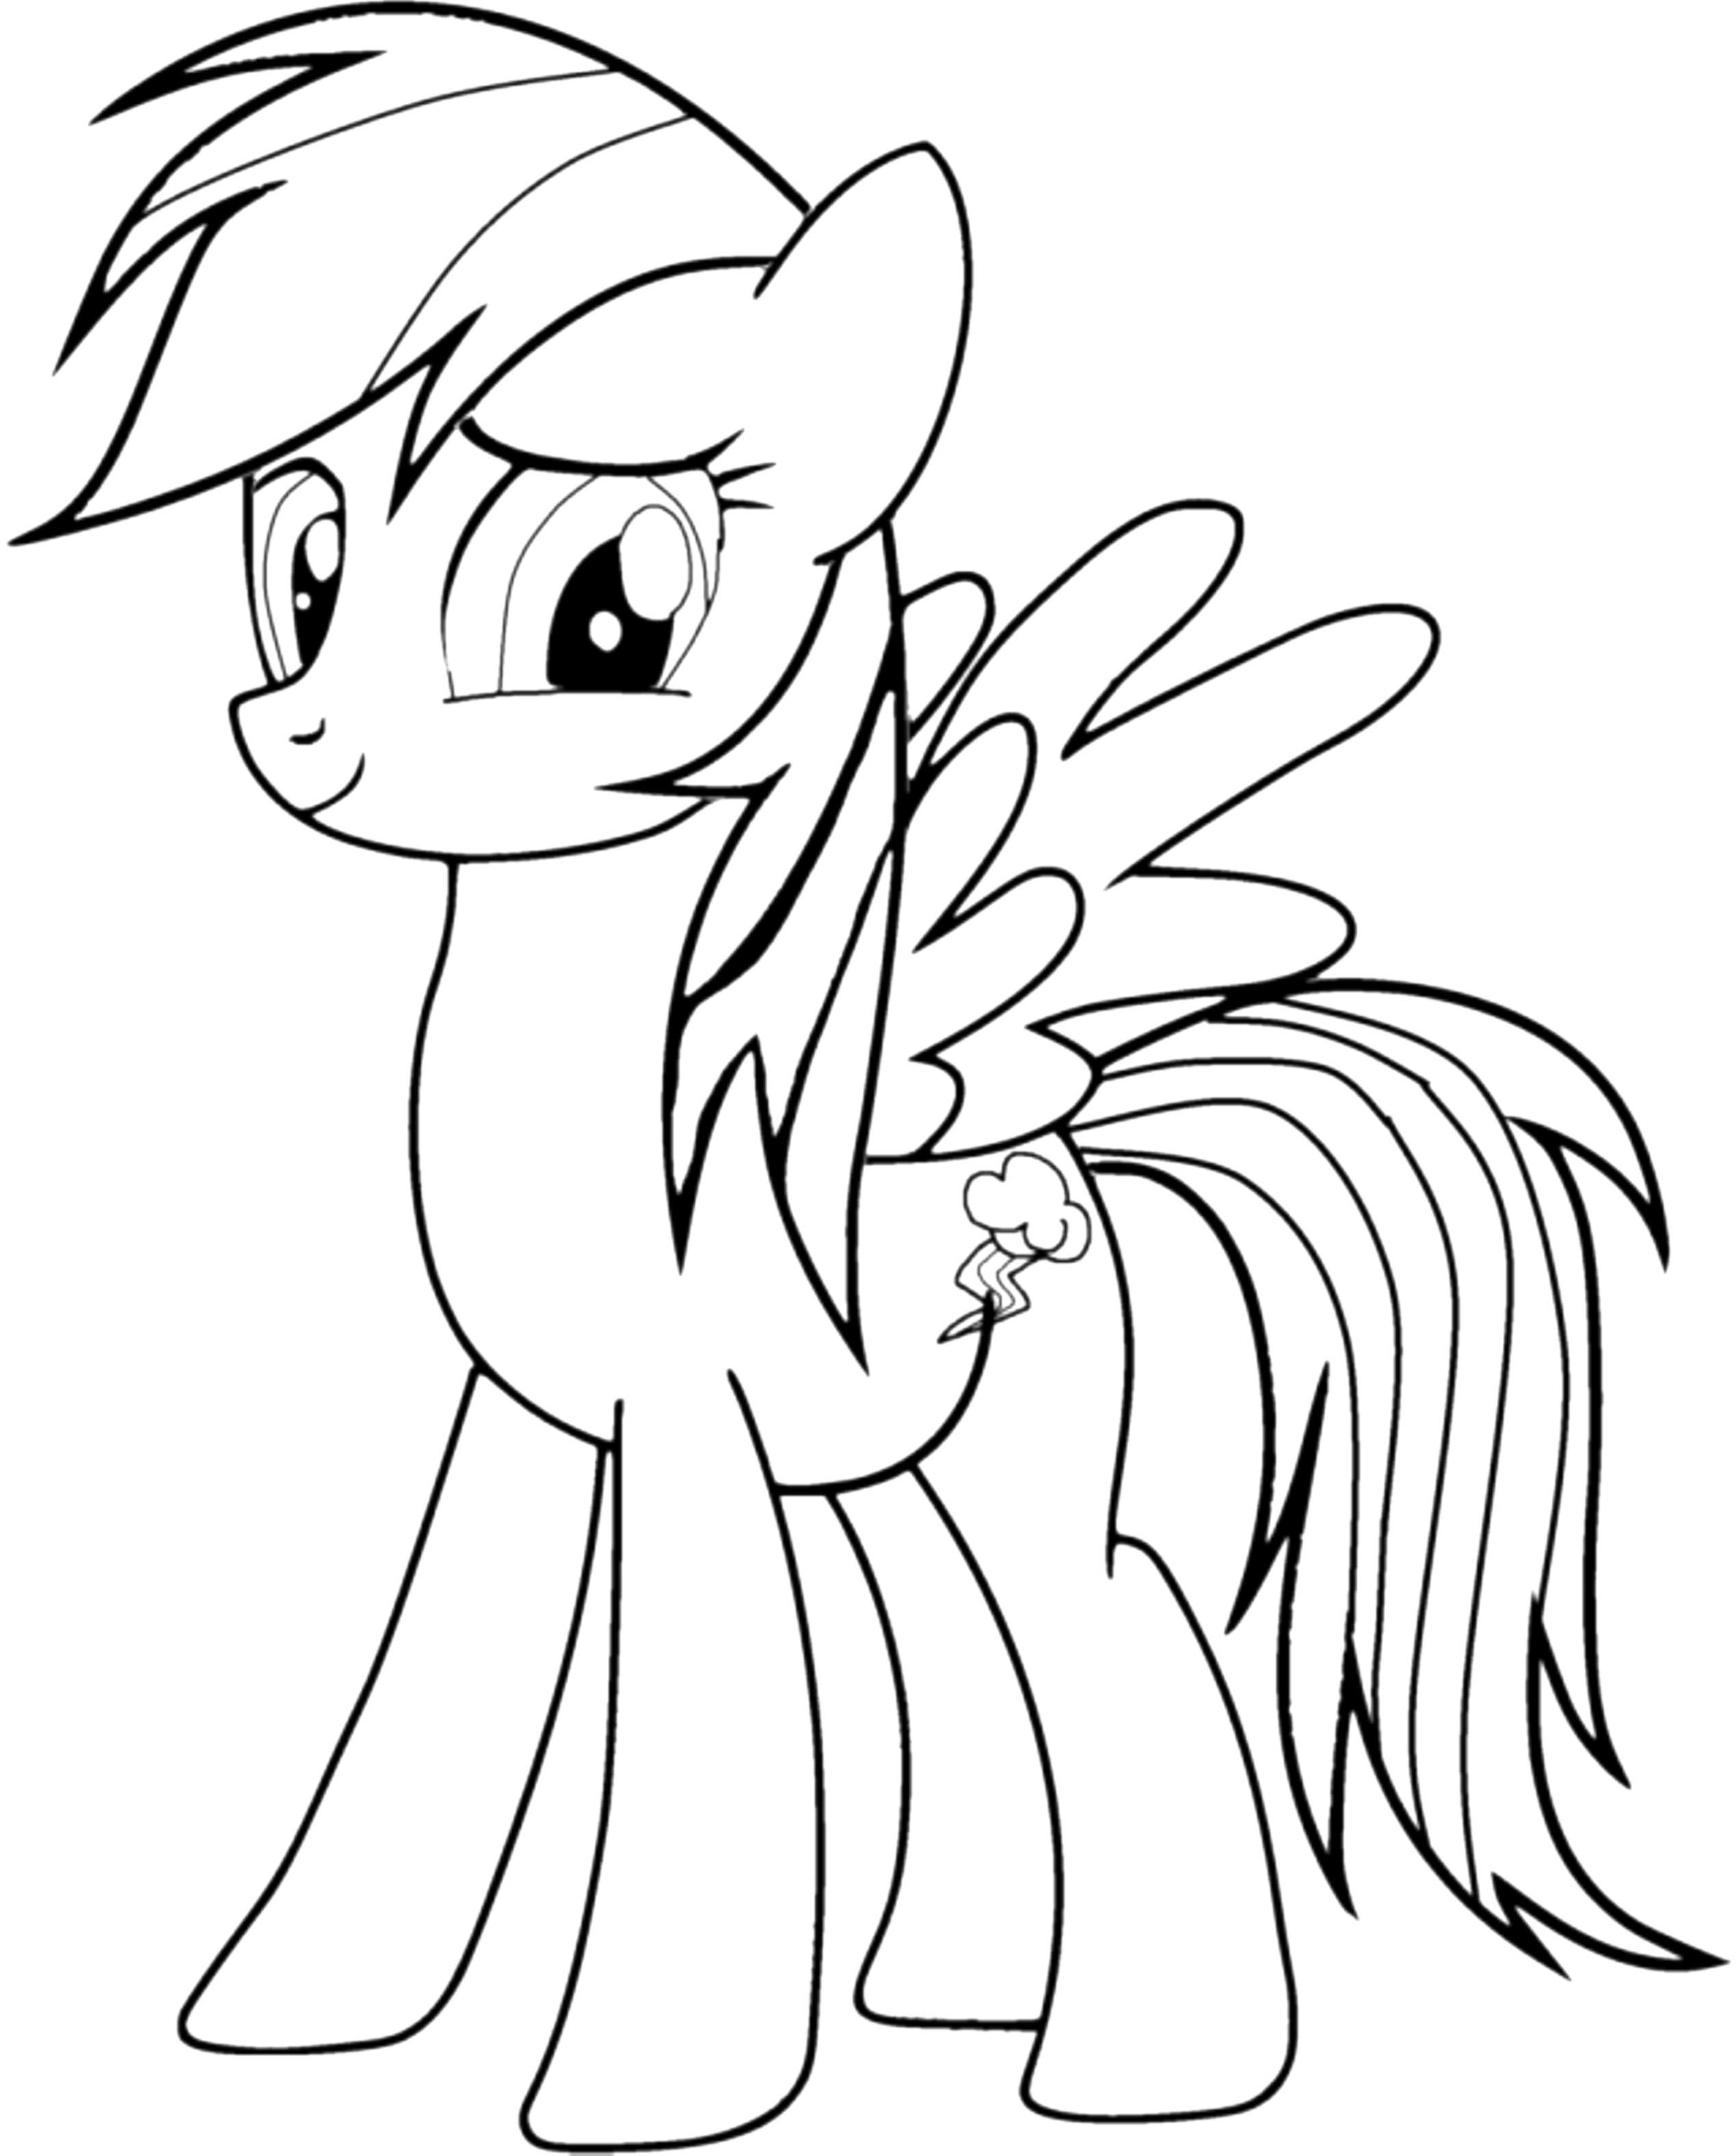 Cute My Little Pony Coloring Pages Rainbow Dash Printable Kids